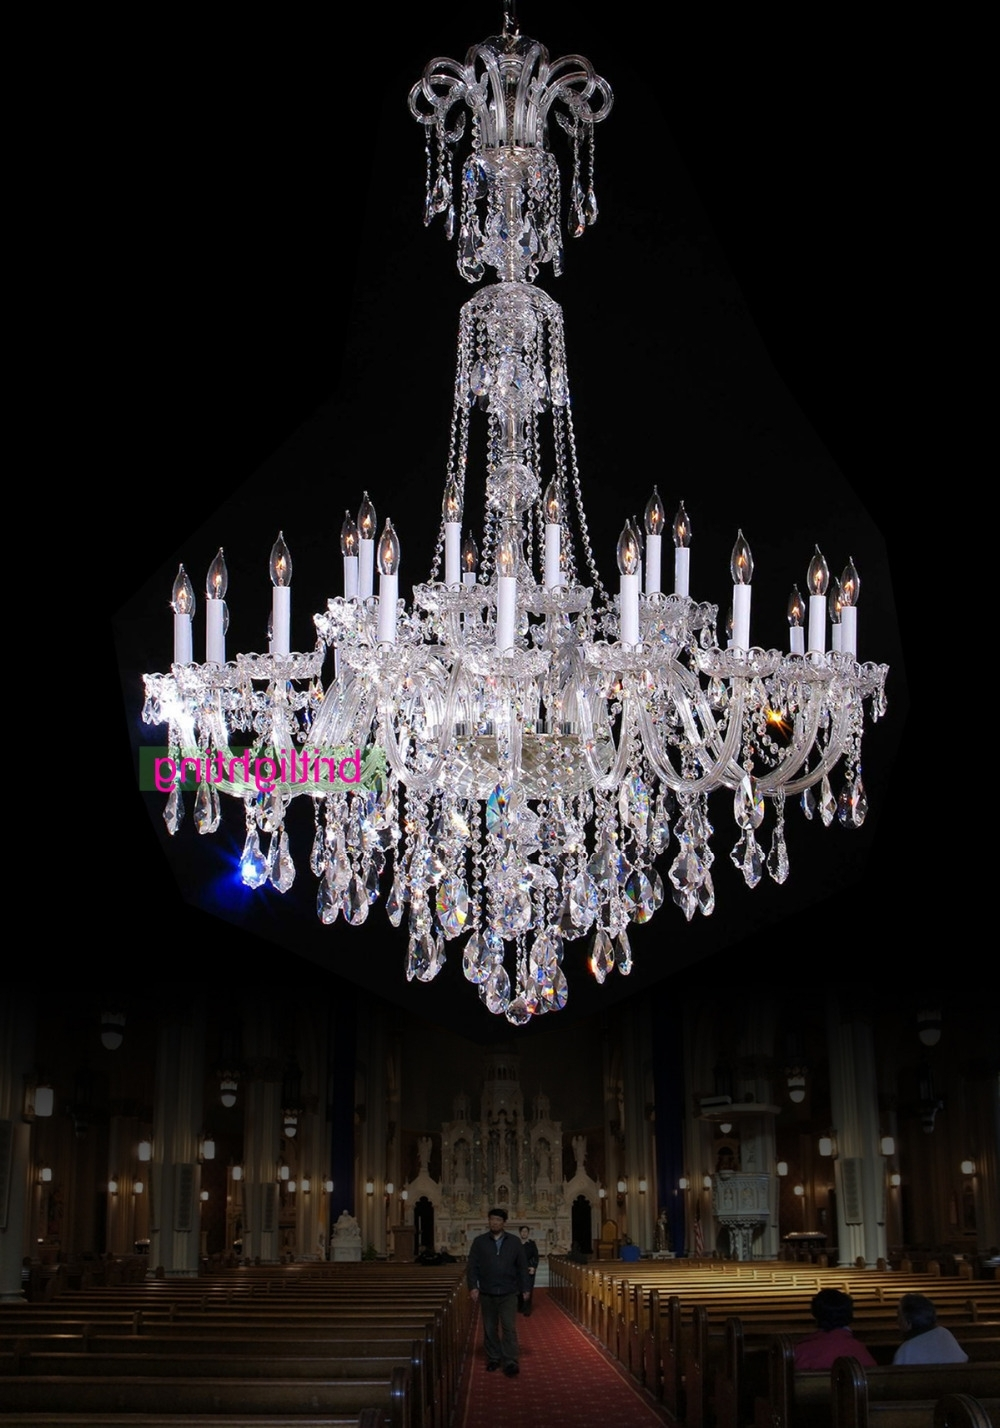 Extra Large Crystal Chandeliers Throughout Well Known Large Chandelier With Crystal Pendants Big Lamp For Hotel Extra (Gallery 8 of 15)